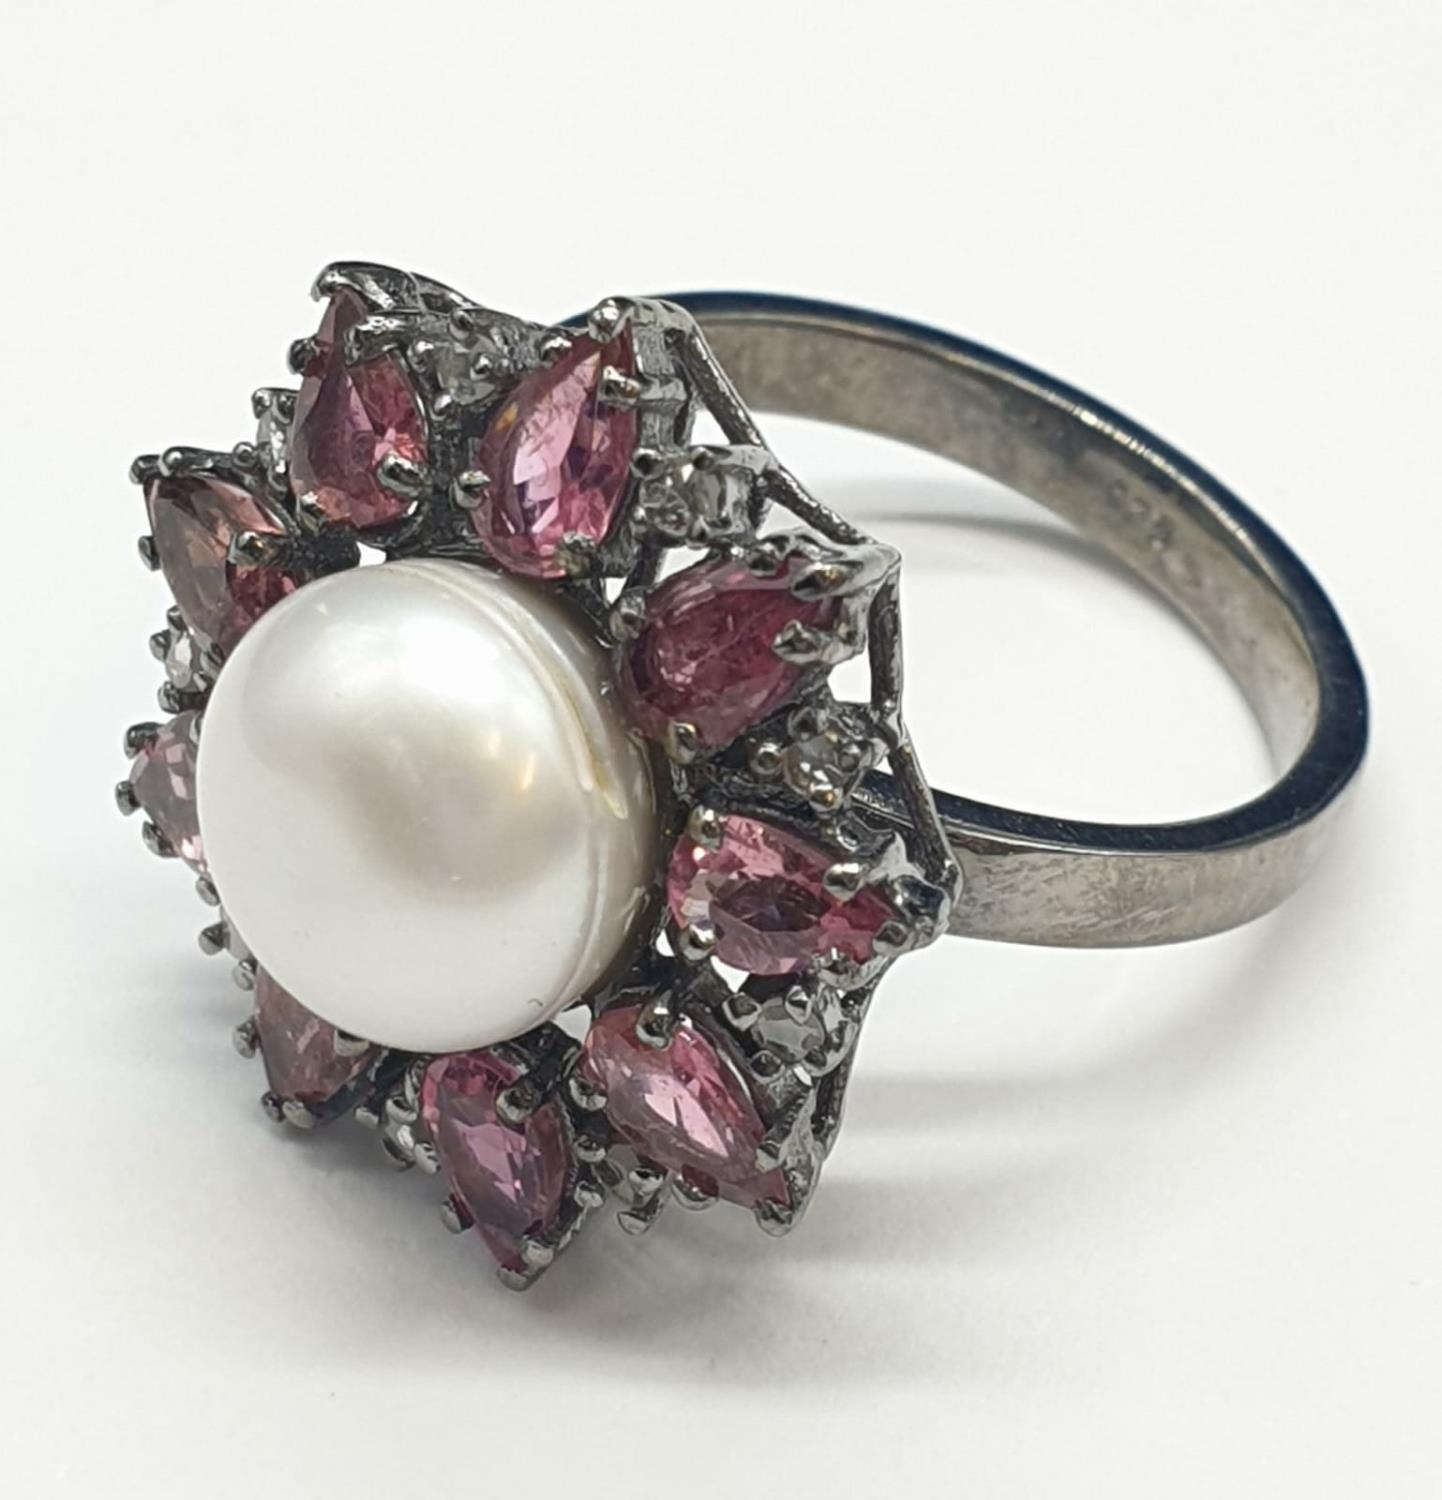 4.40 Cts Pearl & 2.35 Cts Pink Tourmalines set inside a 925 Blackened silver ring. With 0.20 Cts - Image 2 of 7